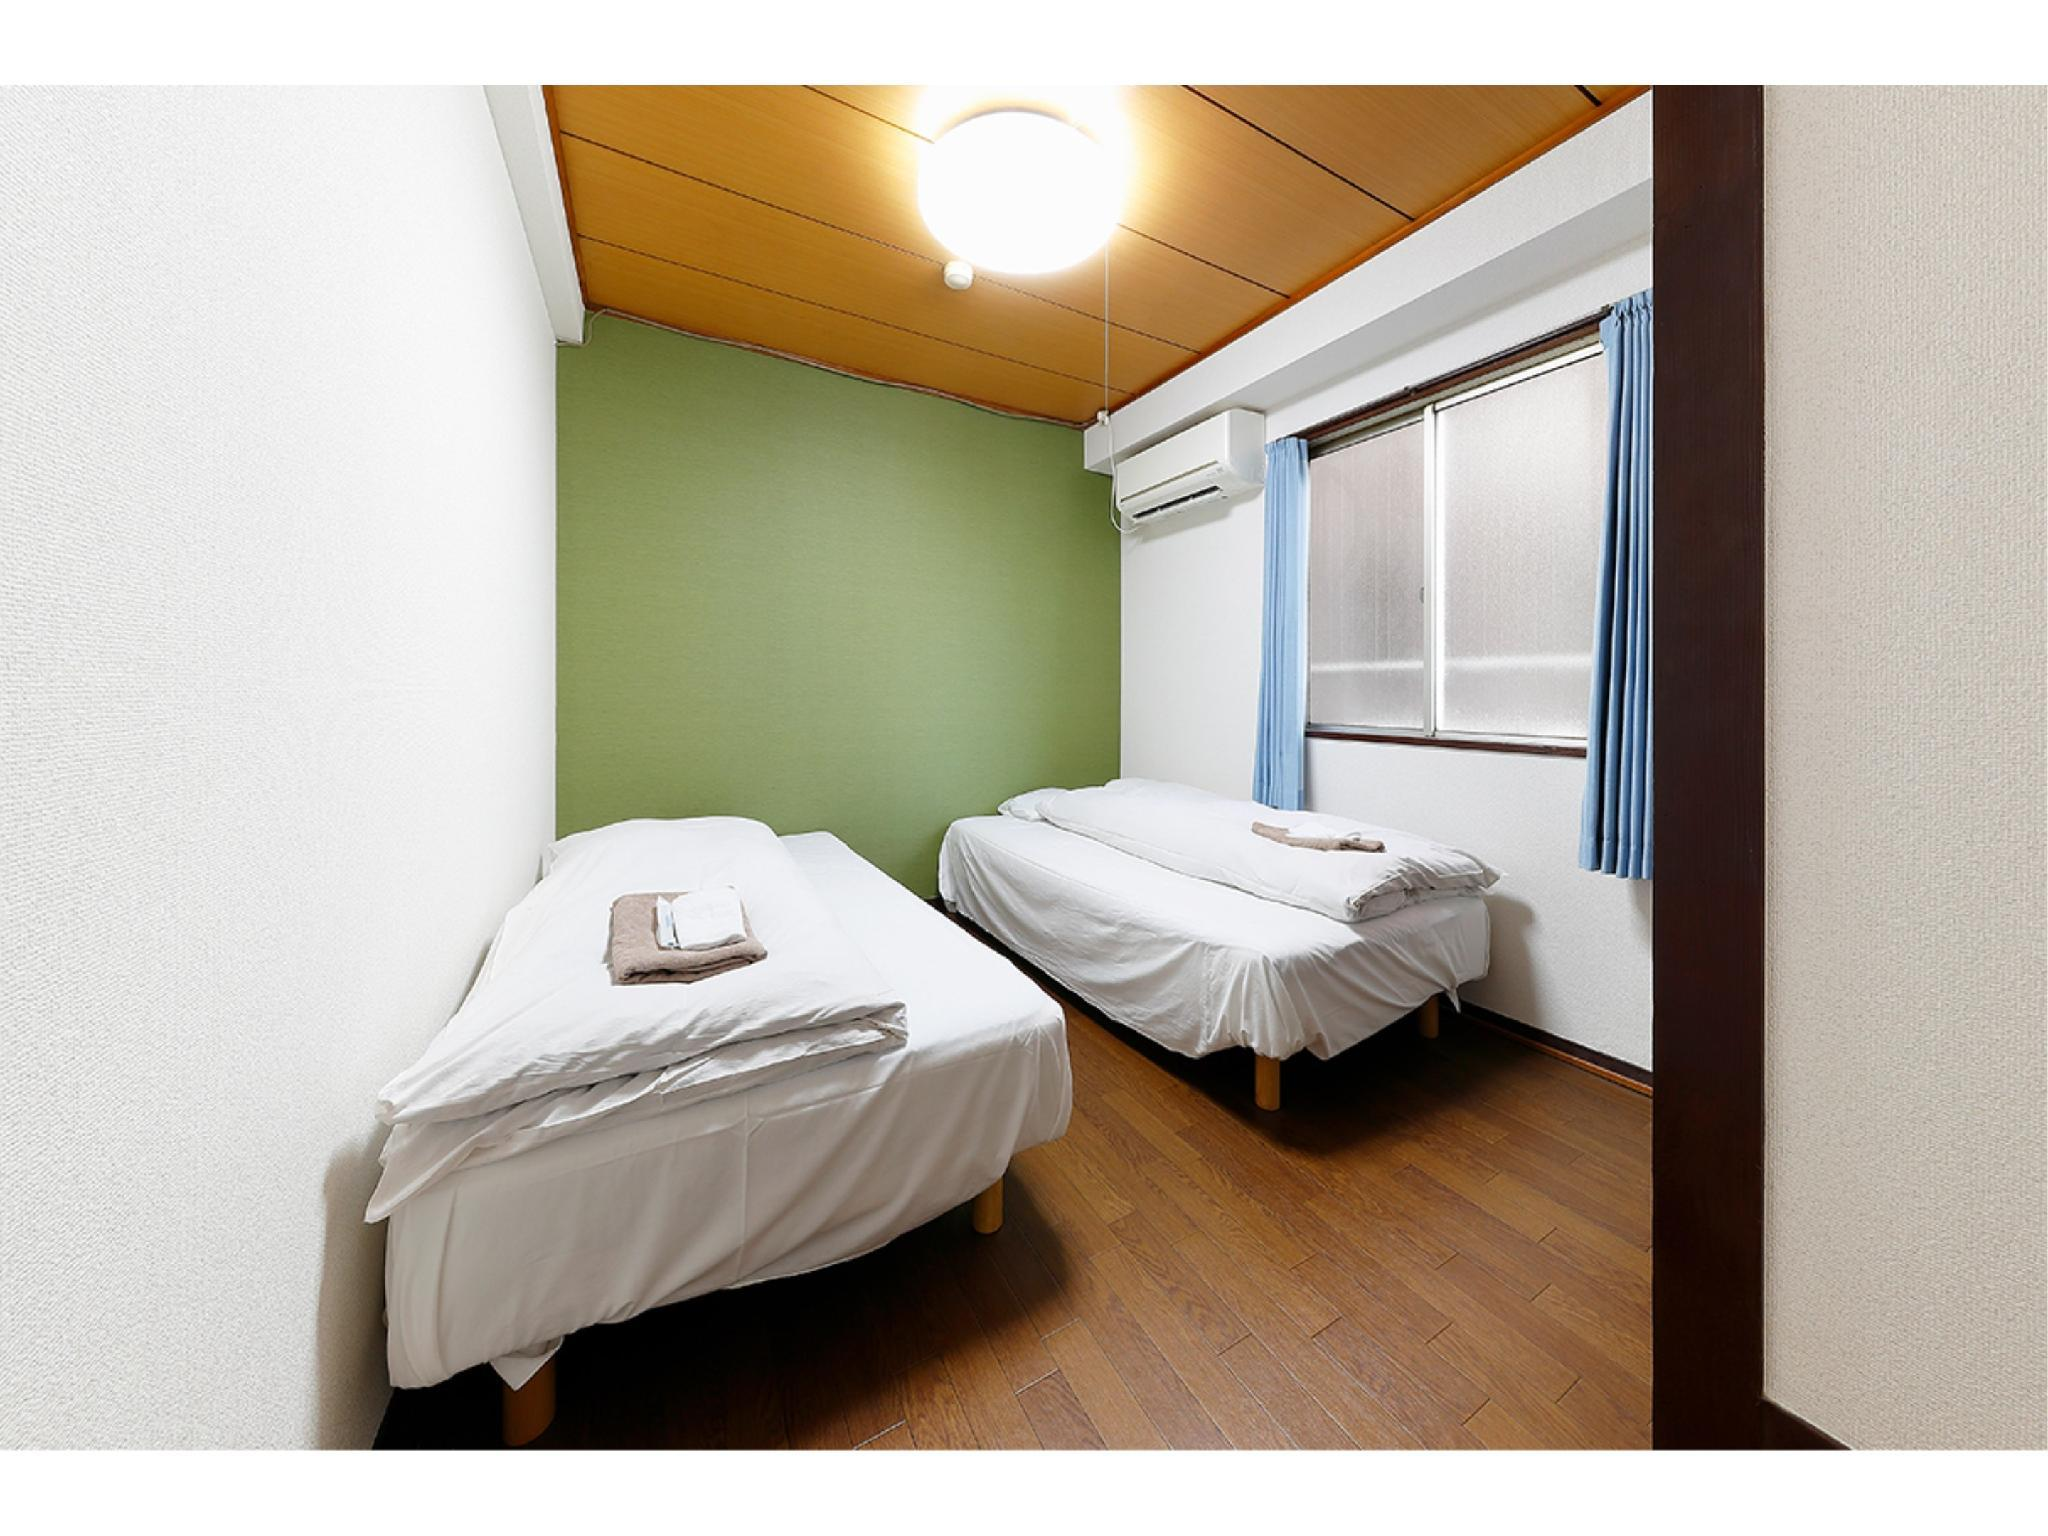 ■エコノミーツイン☆一番人気☆■和室または洋室(指定不可) (Economy Twin Room (Japanese-style Room or Western-style Room) *Allocated on arrival)